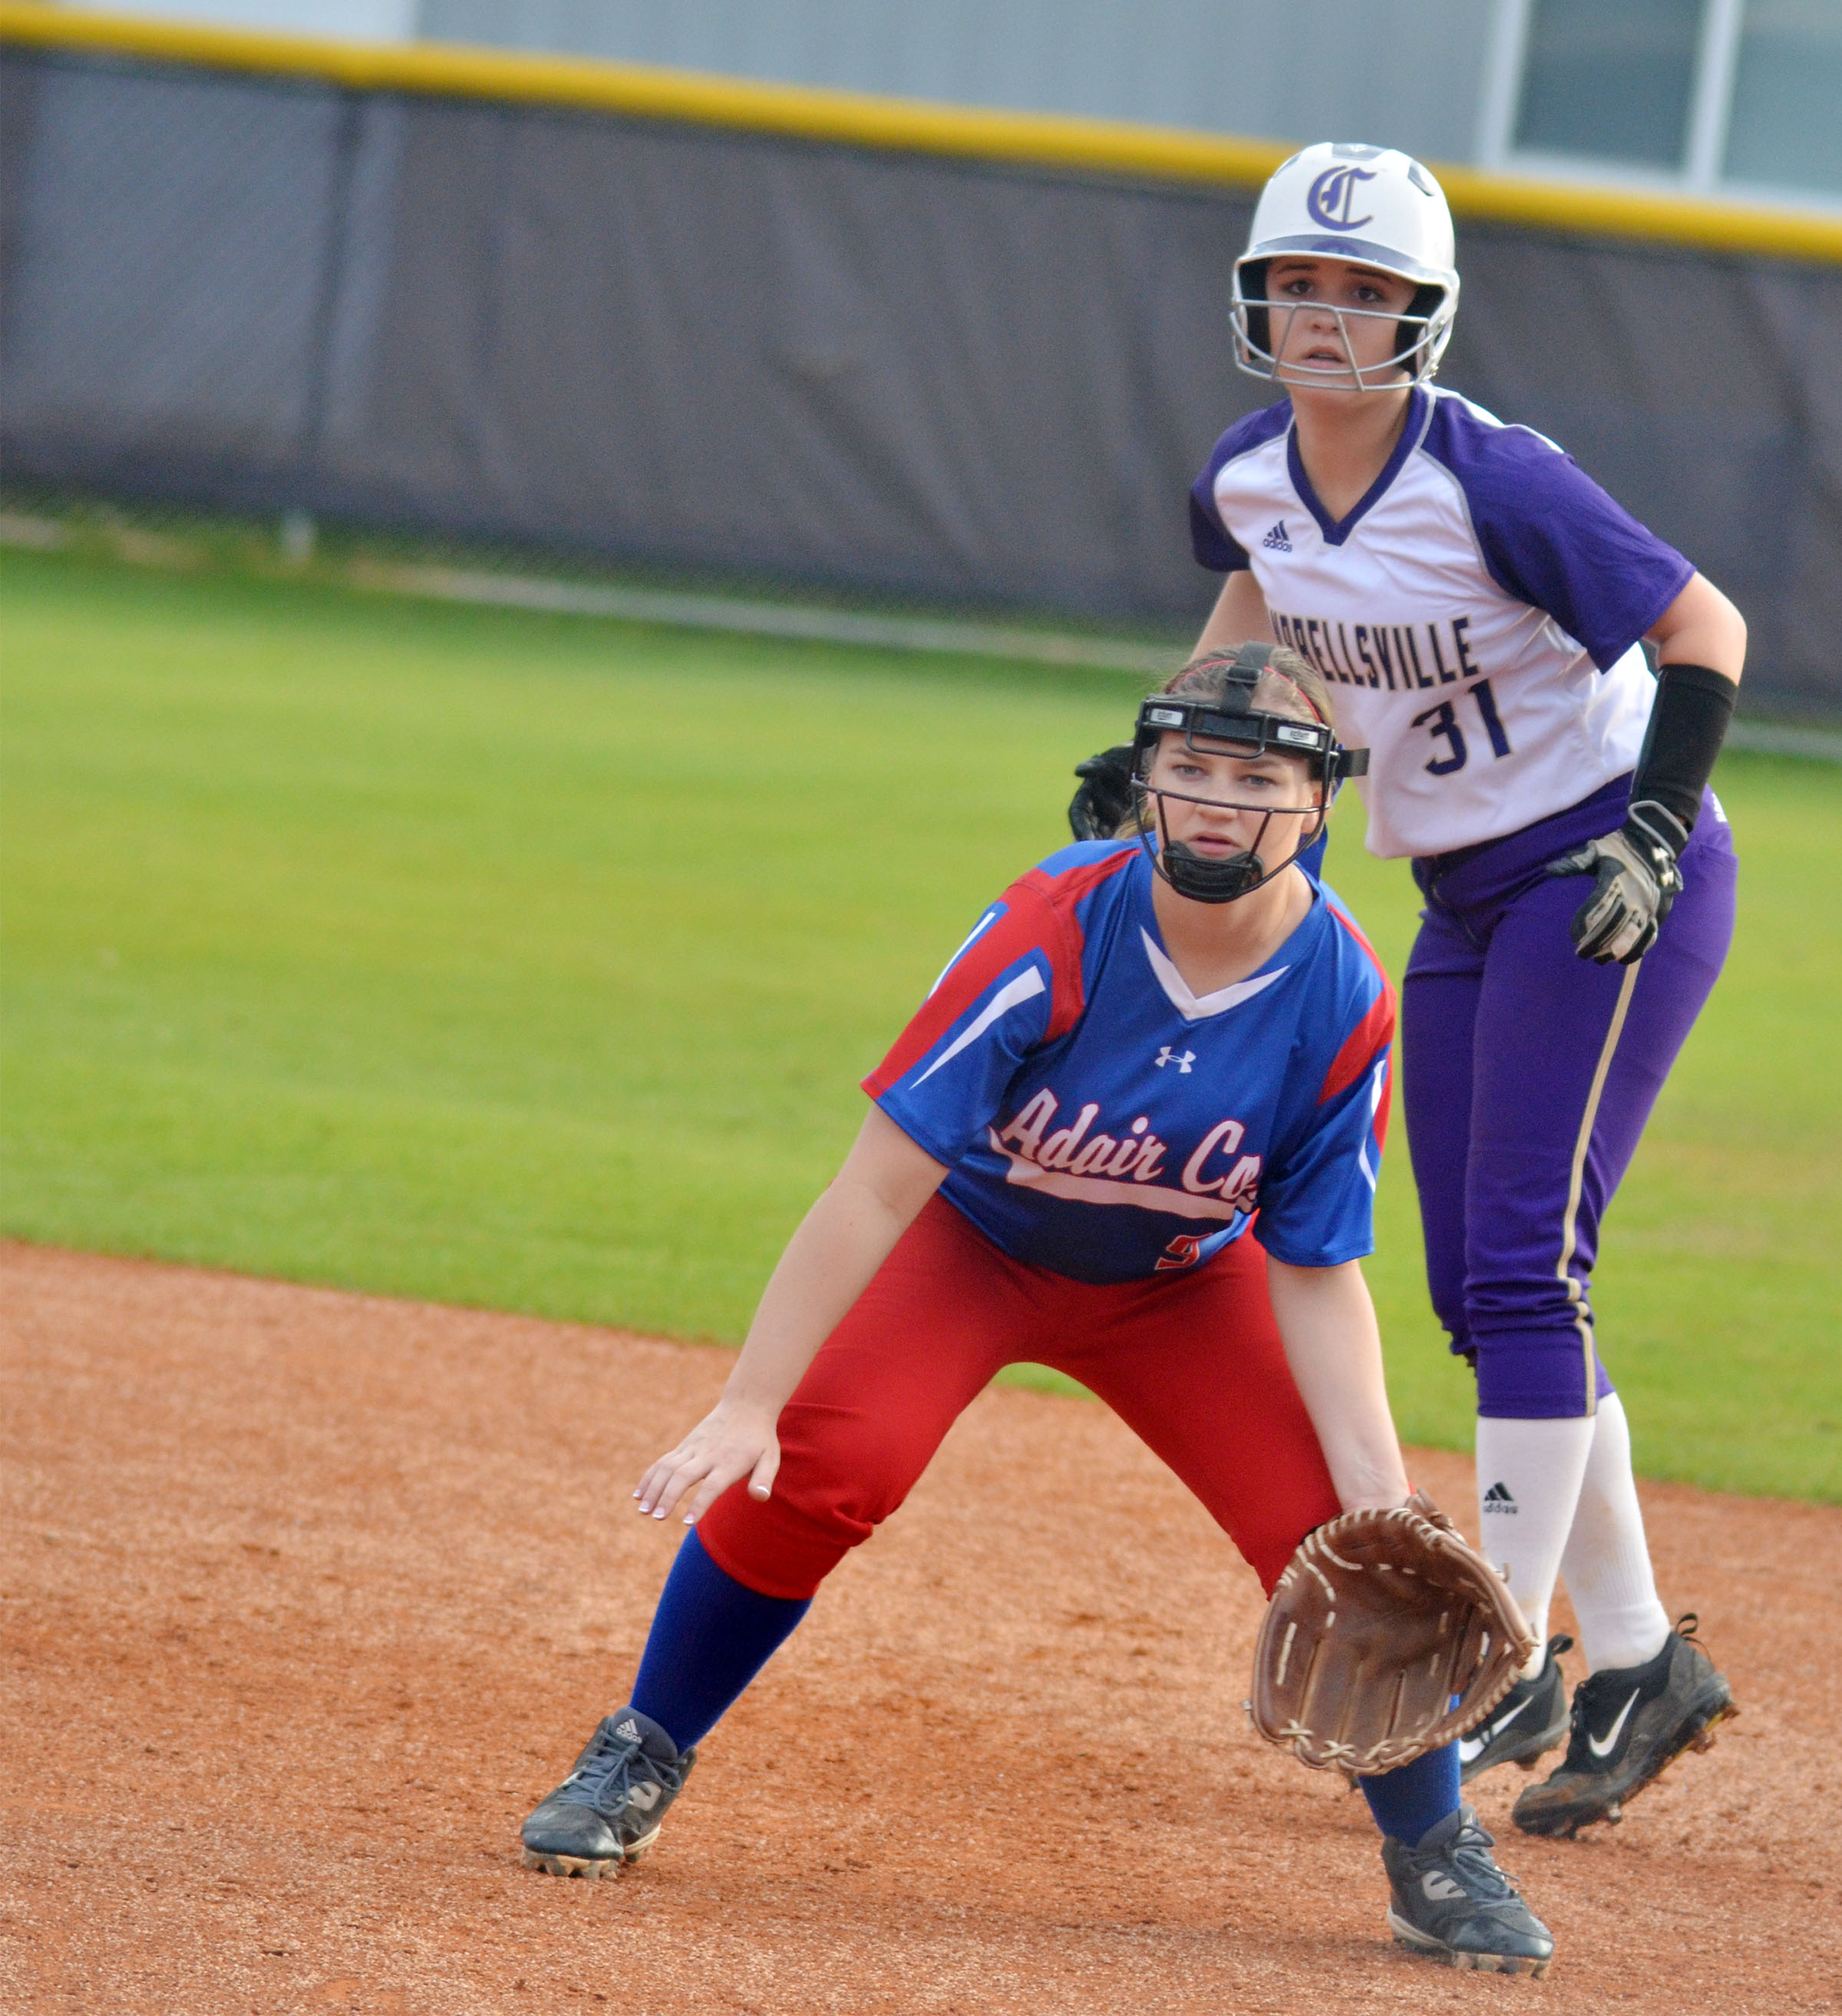 Campbellsville Middle School eighth-grader Kenzi Forbis looks to go to second.